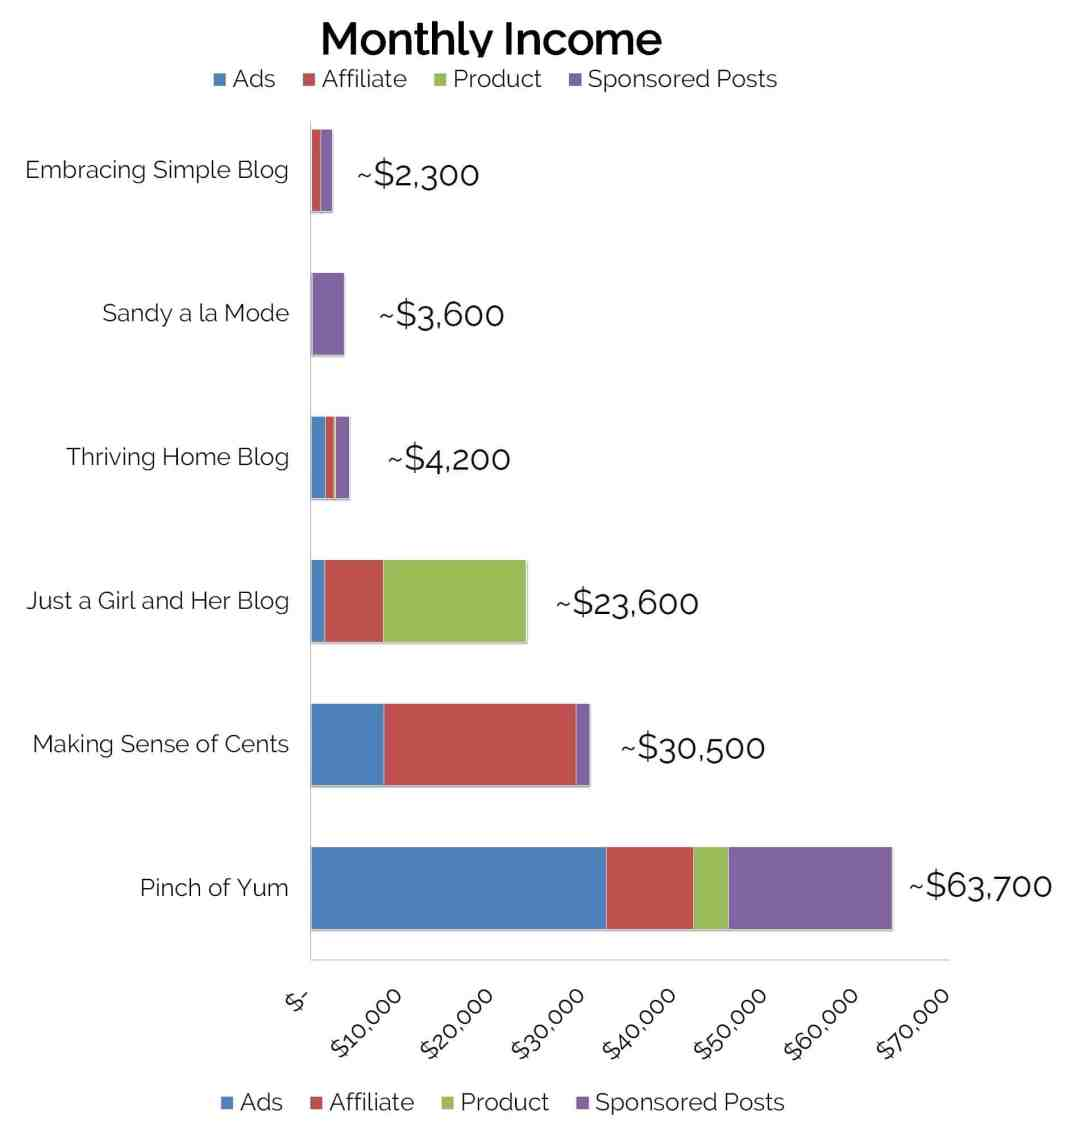 How to Make Money with a Blog Monthly Income Reports www.startamomblog